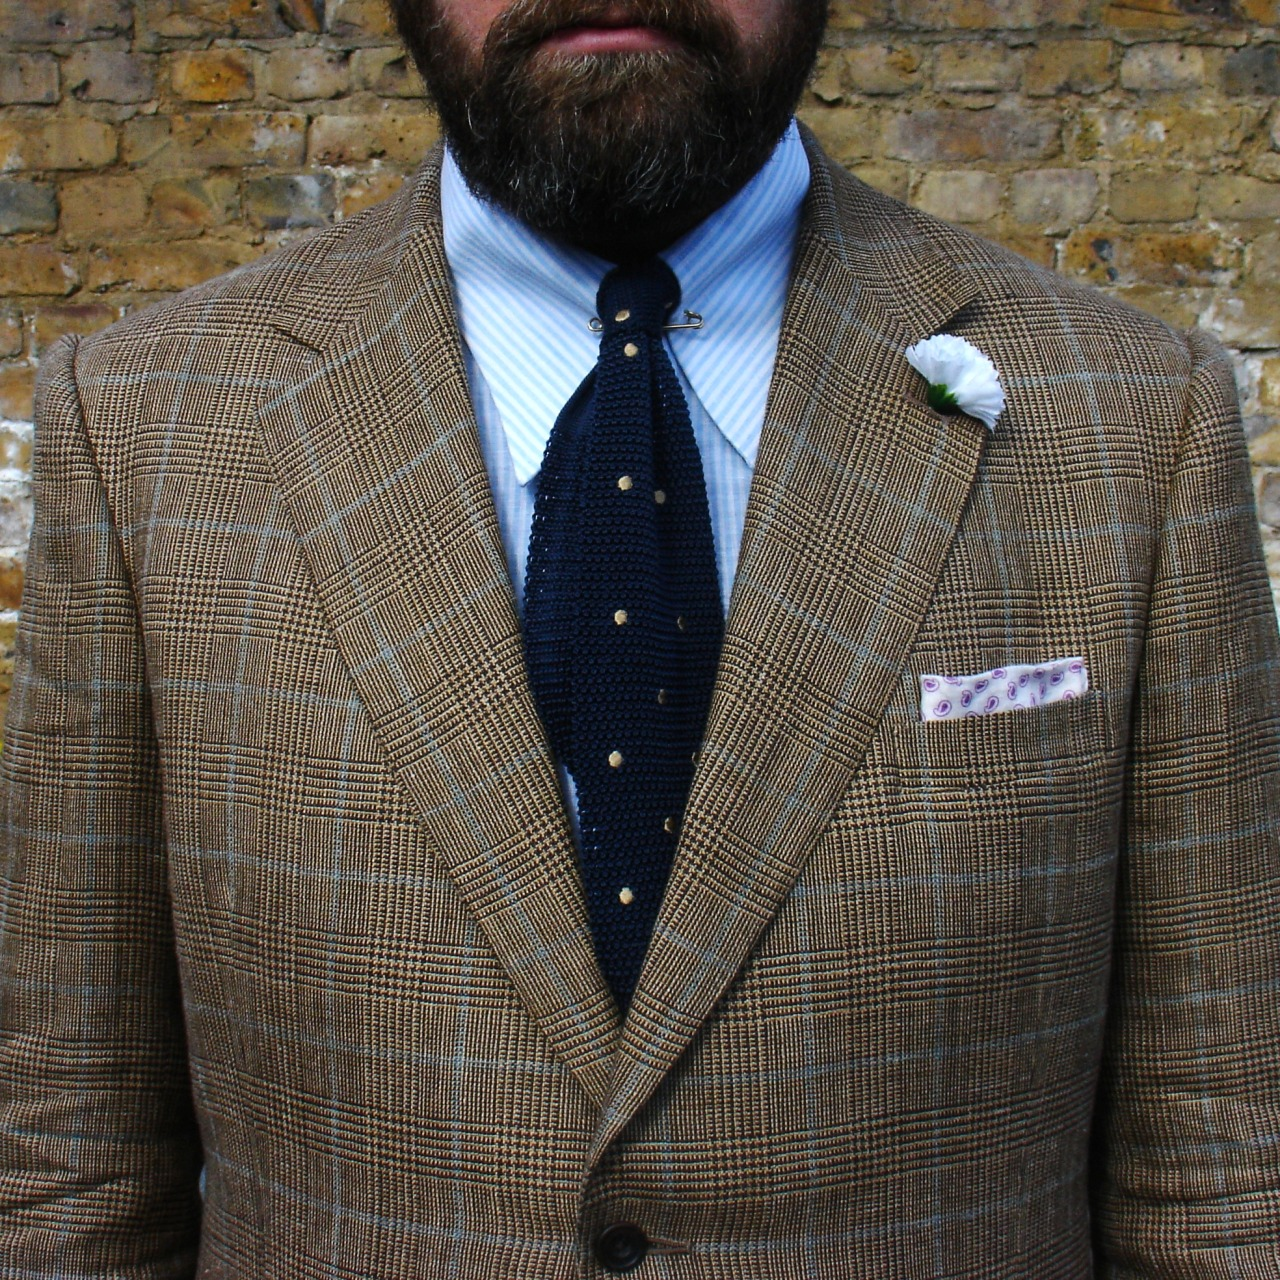 LondonSun  ( aka Four Pattern Bingo ) Bespoke linen/silk mix Glen-check suit cut by John Deboise at Cad & the Dandy Boater by Olney  Watered silk boutonnière from A Suitable Wardrobe Dotted silk knit tie from Howard Yount MtM linen shirt from Joe Hemrajani Vintage bespoke suede shoes by J. Jane & Co via ebay